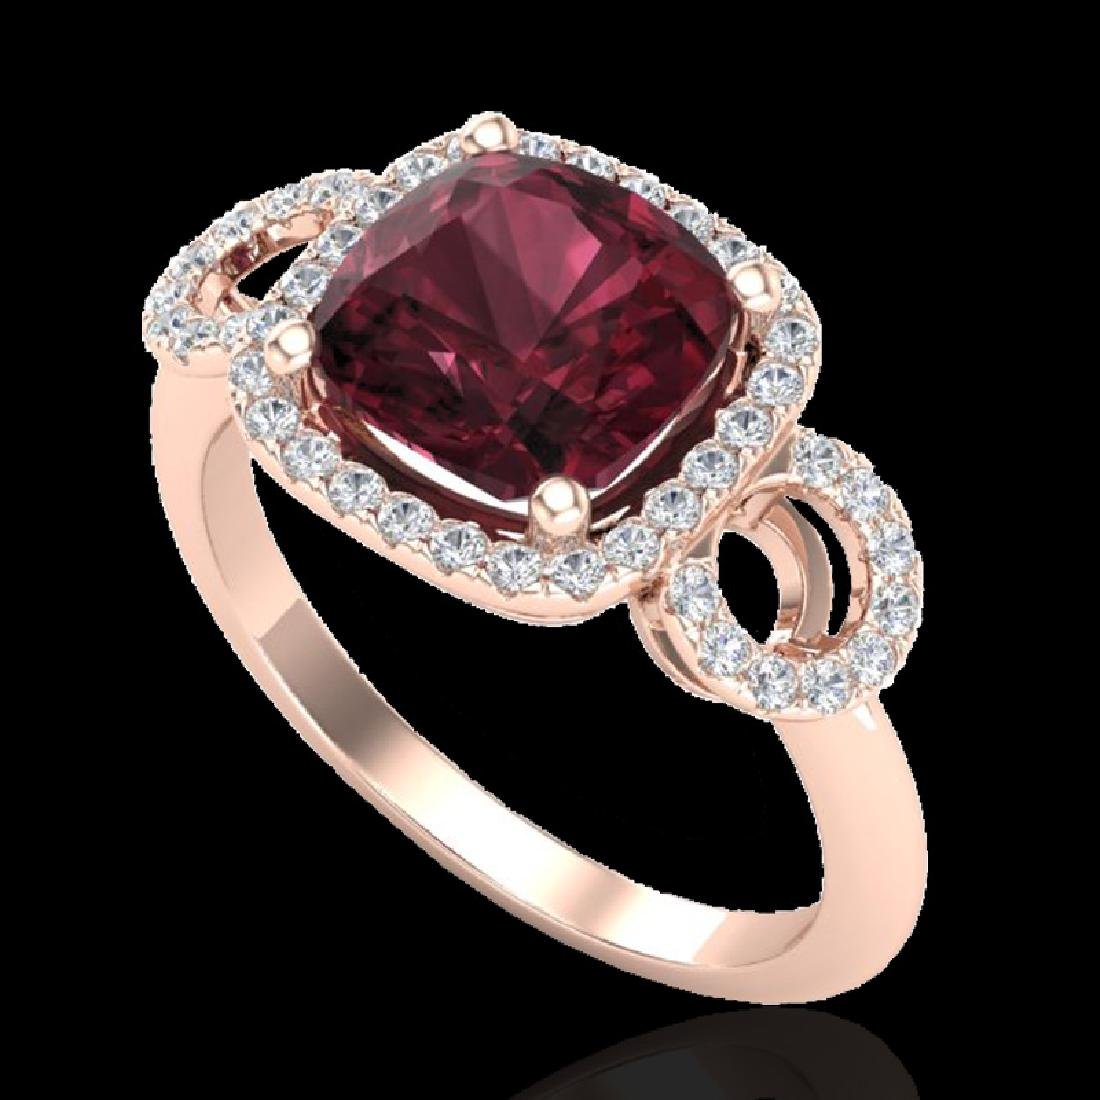 3.75 CTW Garnet & Micro VS/SI Diamond Ring 14K Rose - 2